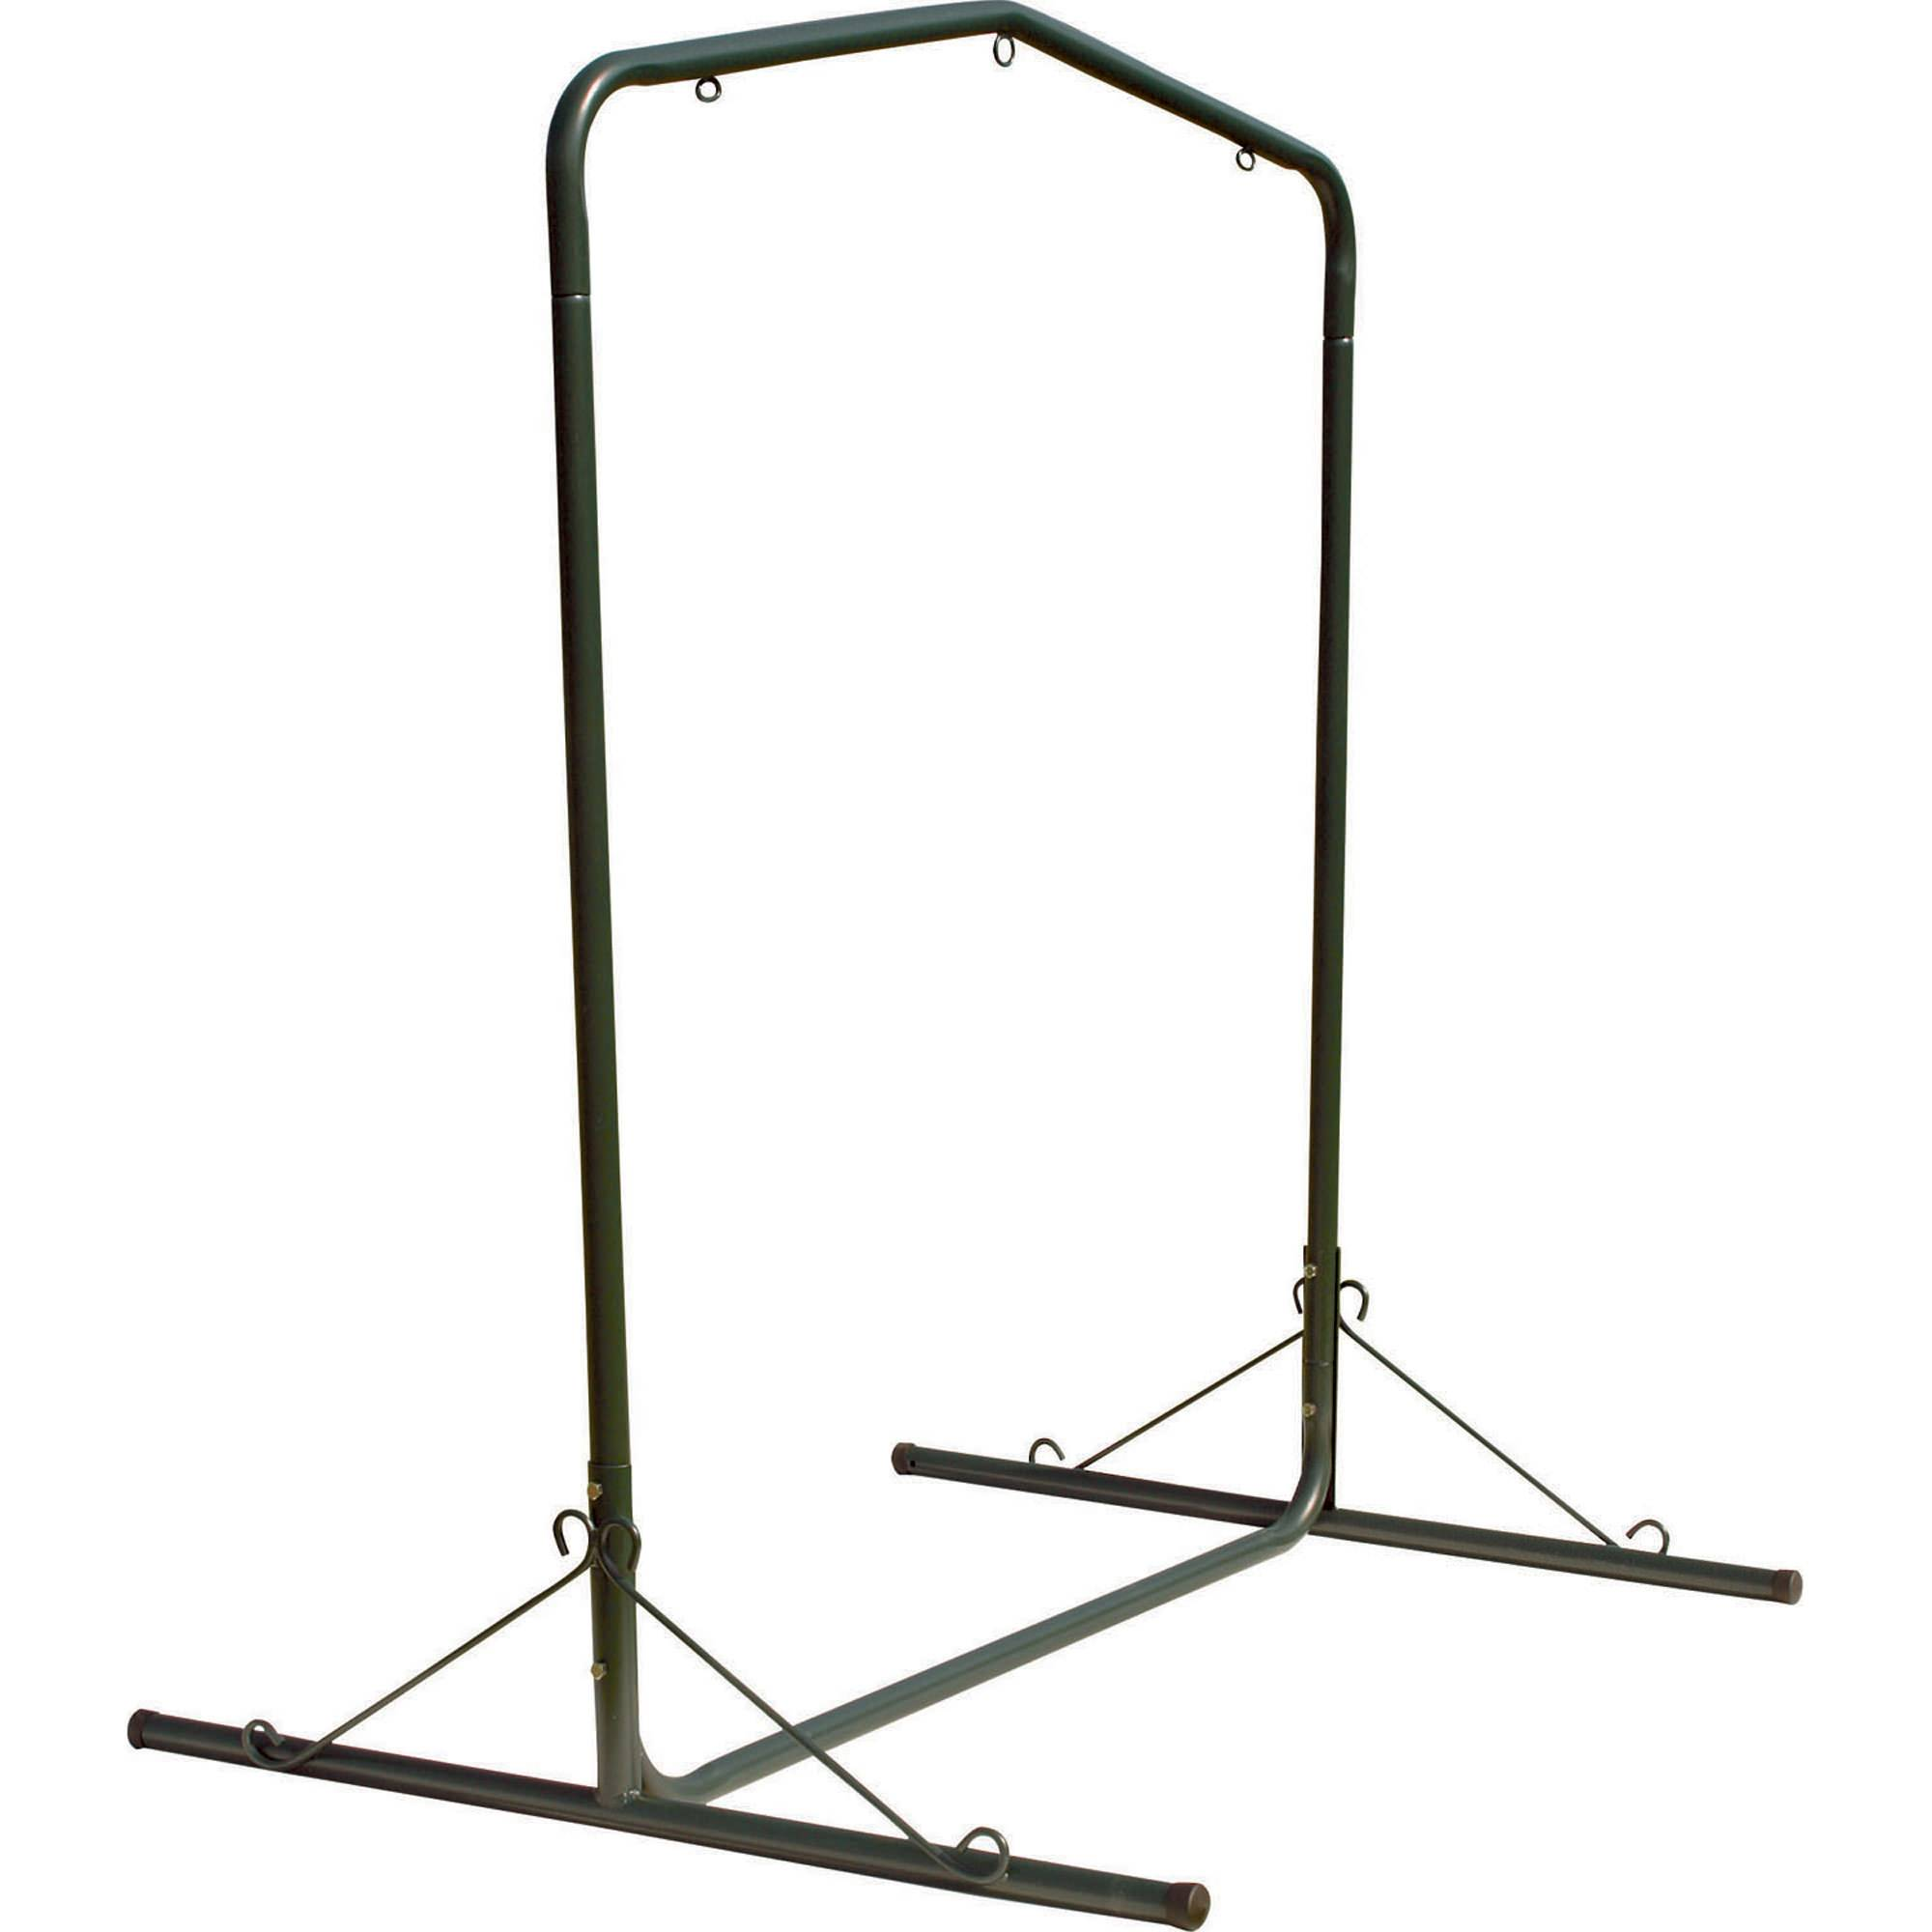 Steel Swing Stand - Forest Green by Hatteras Hammocks